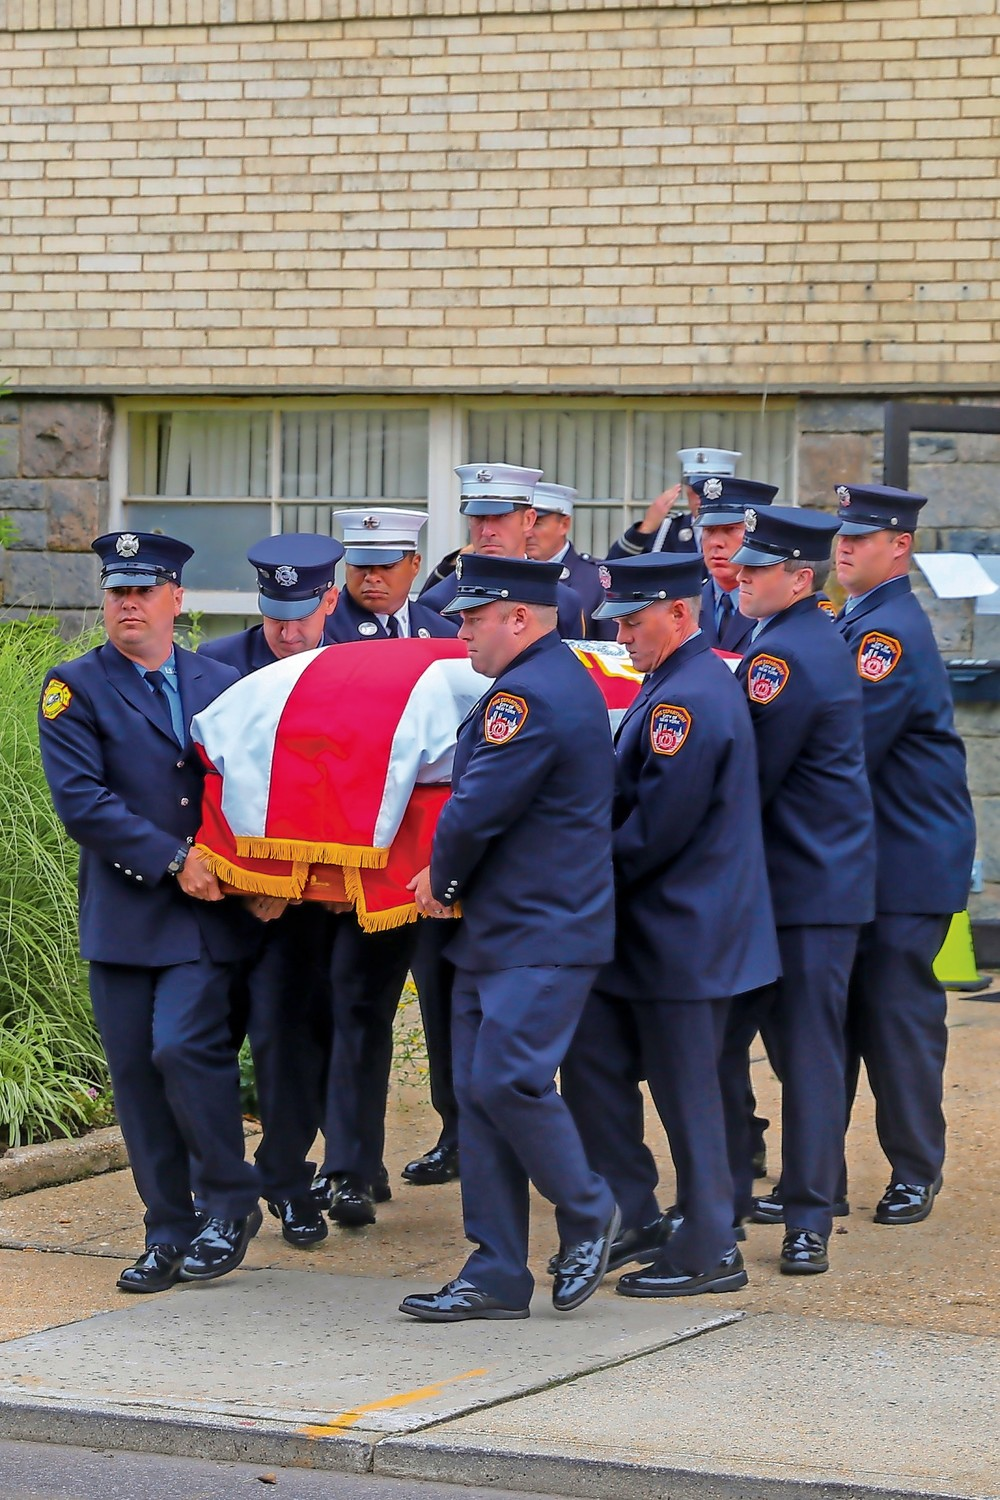 Members of the FDNY carried his casket out of the Bridge Church in Malverne.